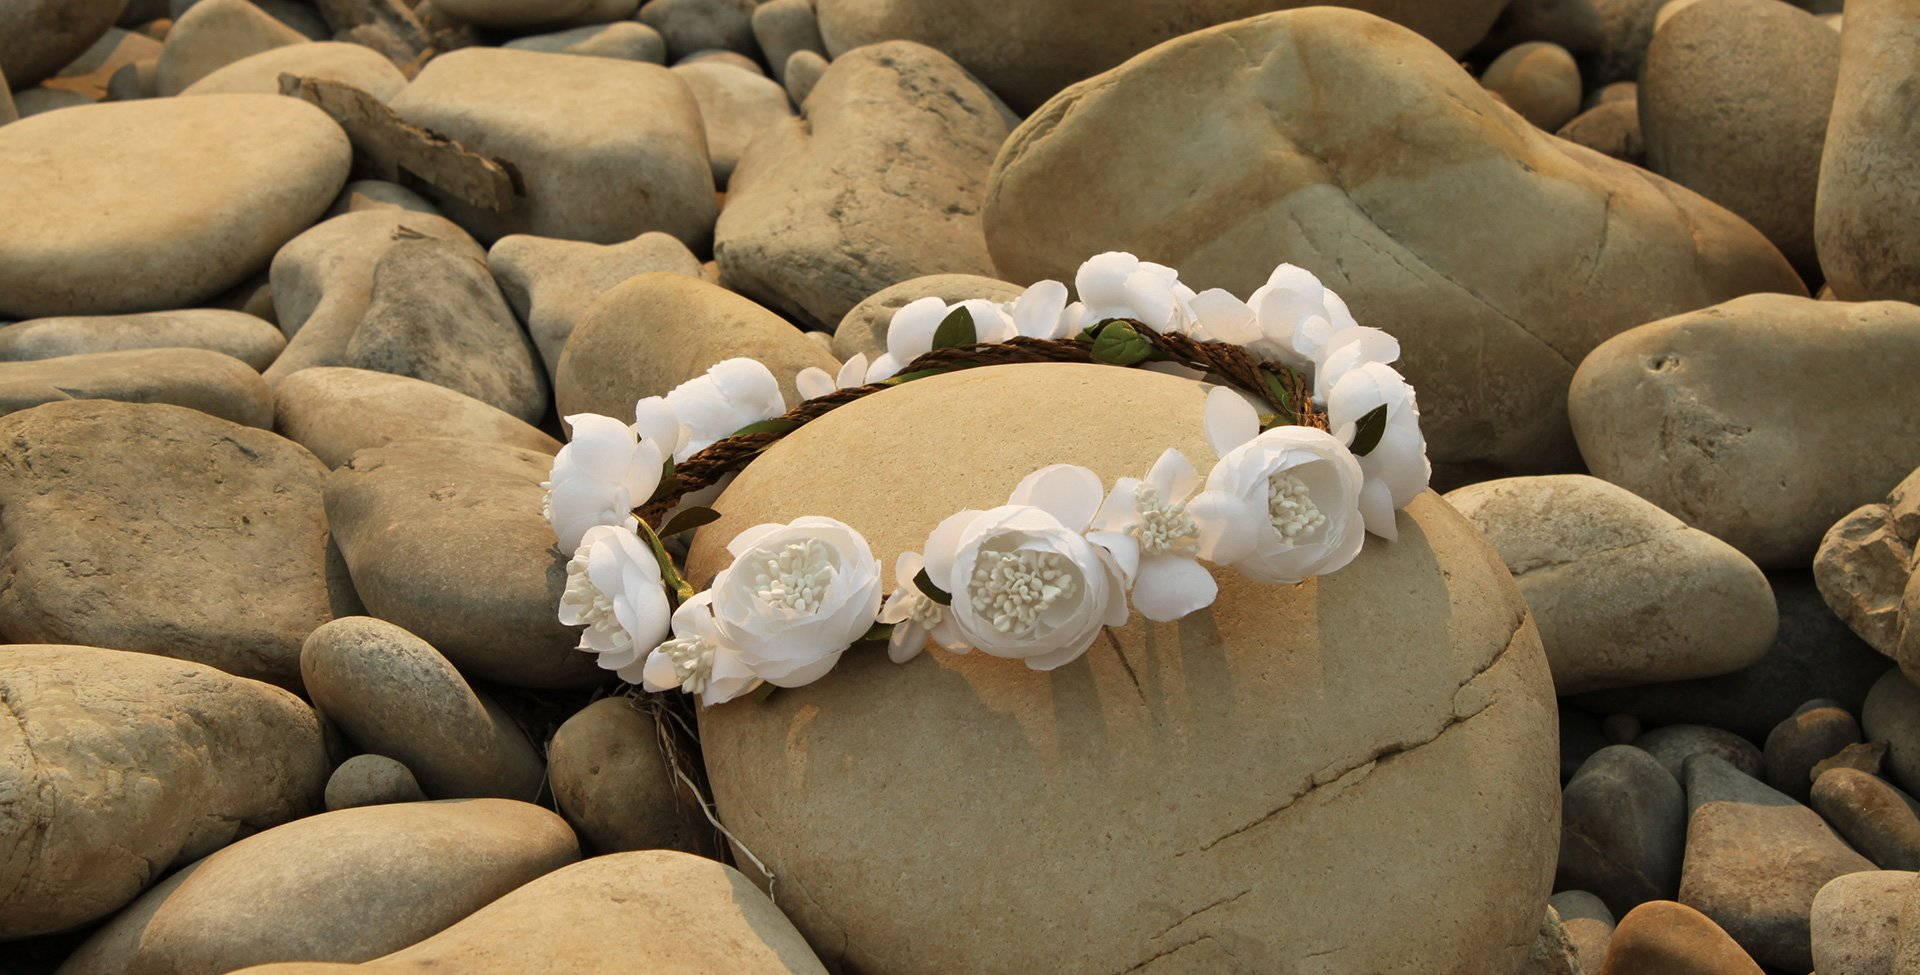 Pure white roses tied together in a bridal headband are placed amongst smooth cobbles and stones.